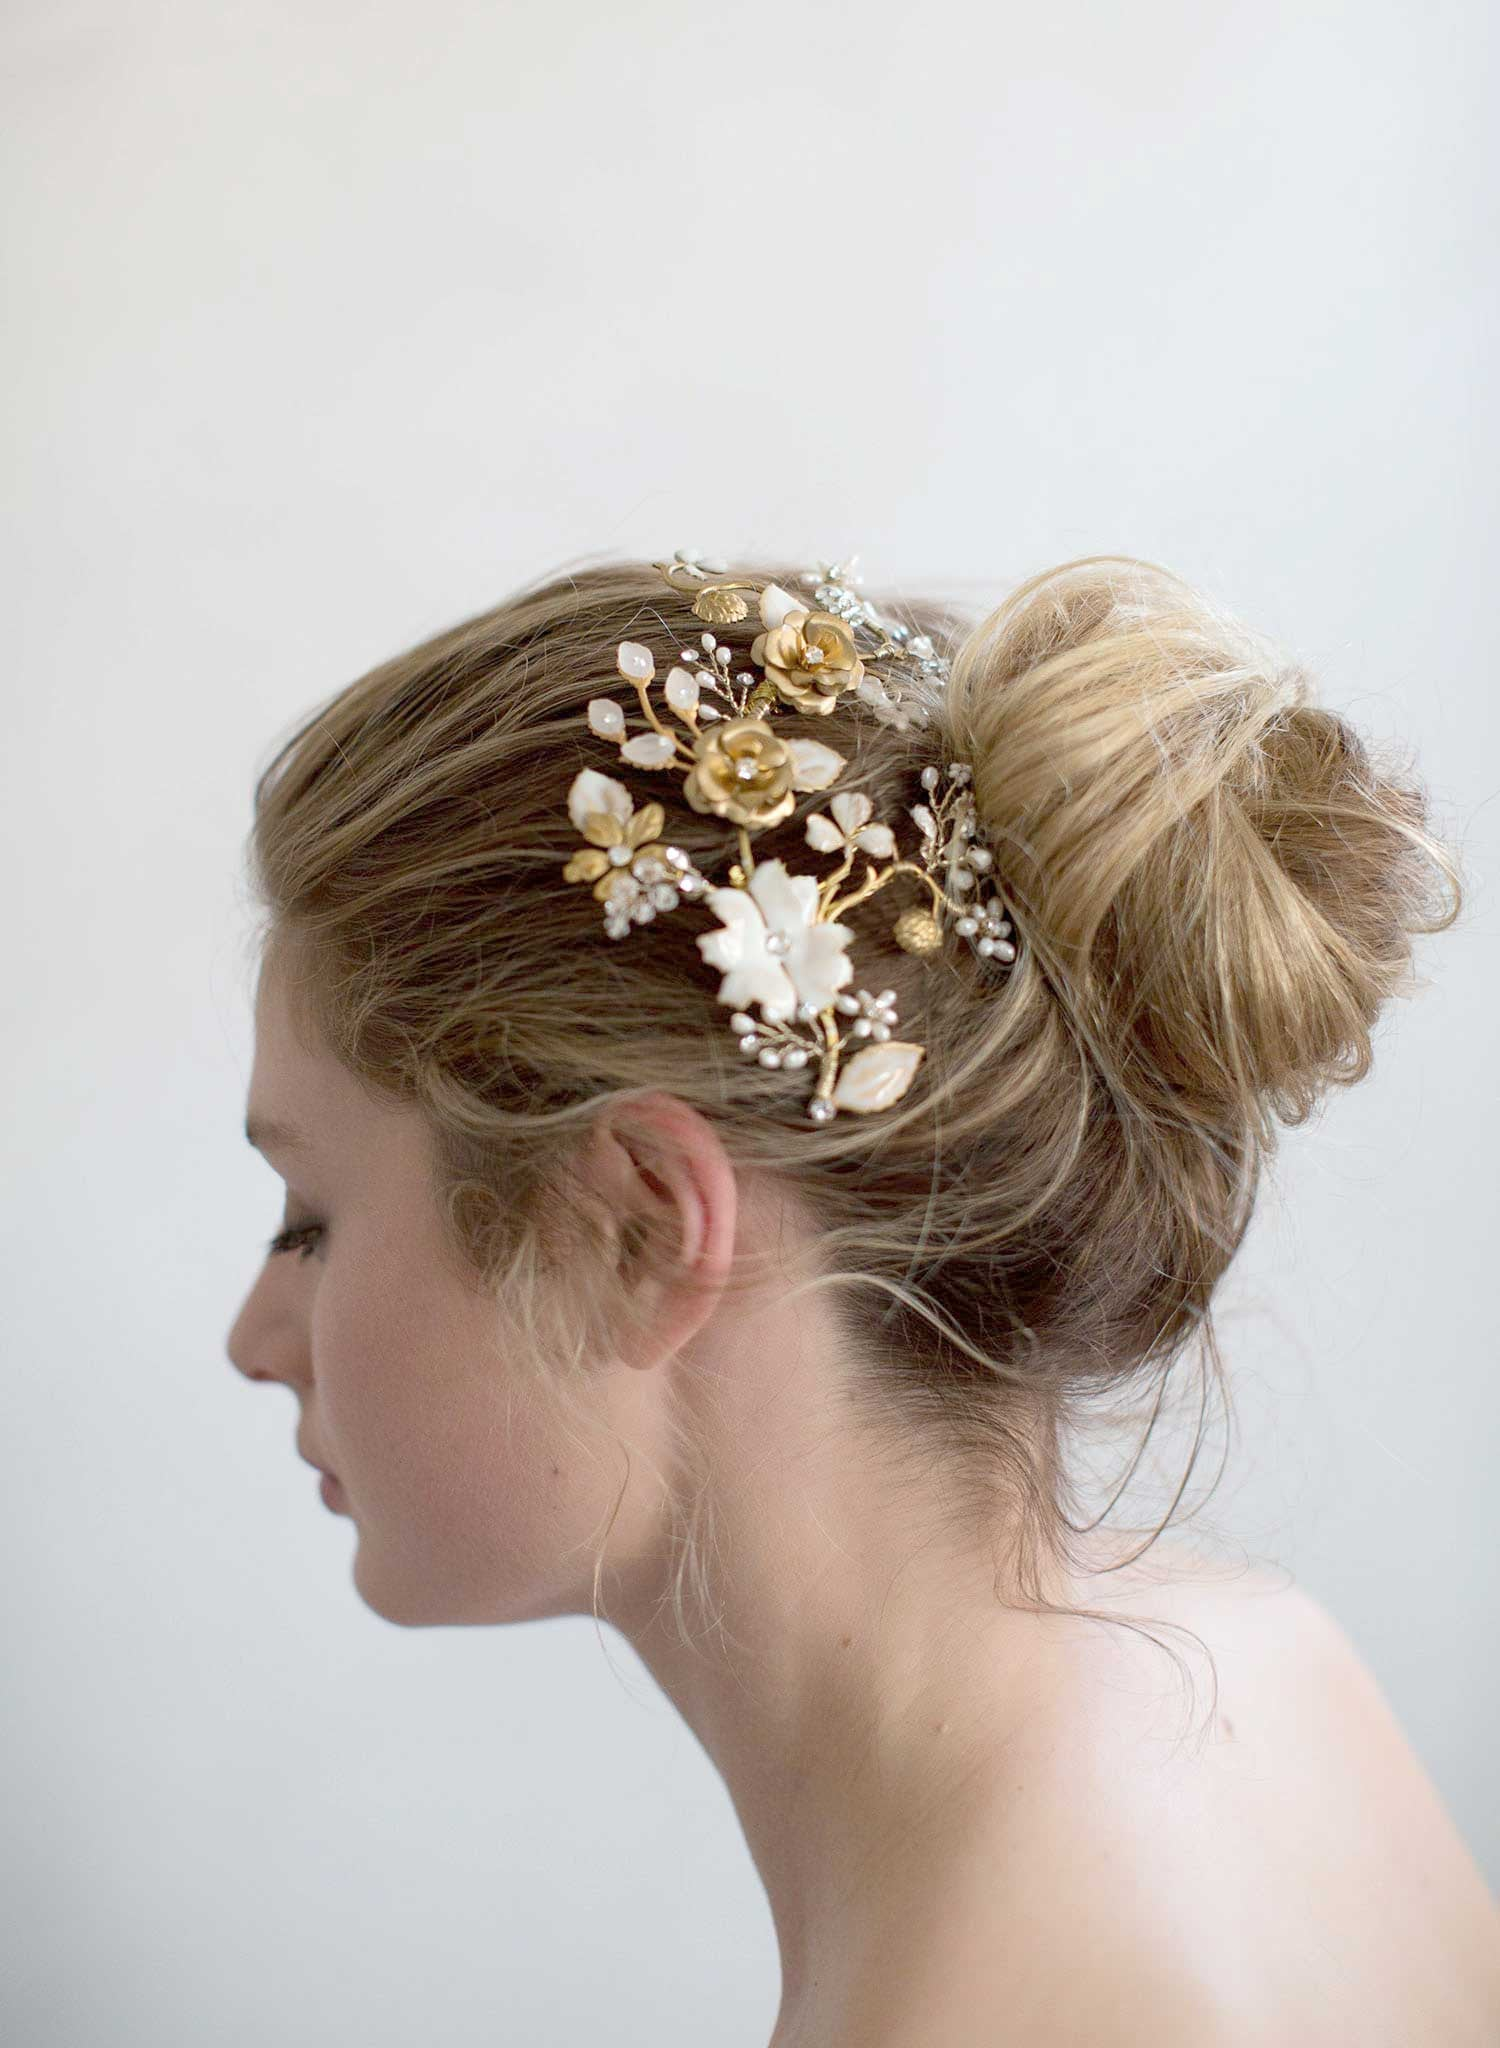 Br Bridal Headpieces Twigs And Honey -  brass and floral headpiece bridal headpiece nature inspired enamel flowers twigs and